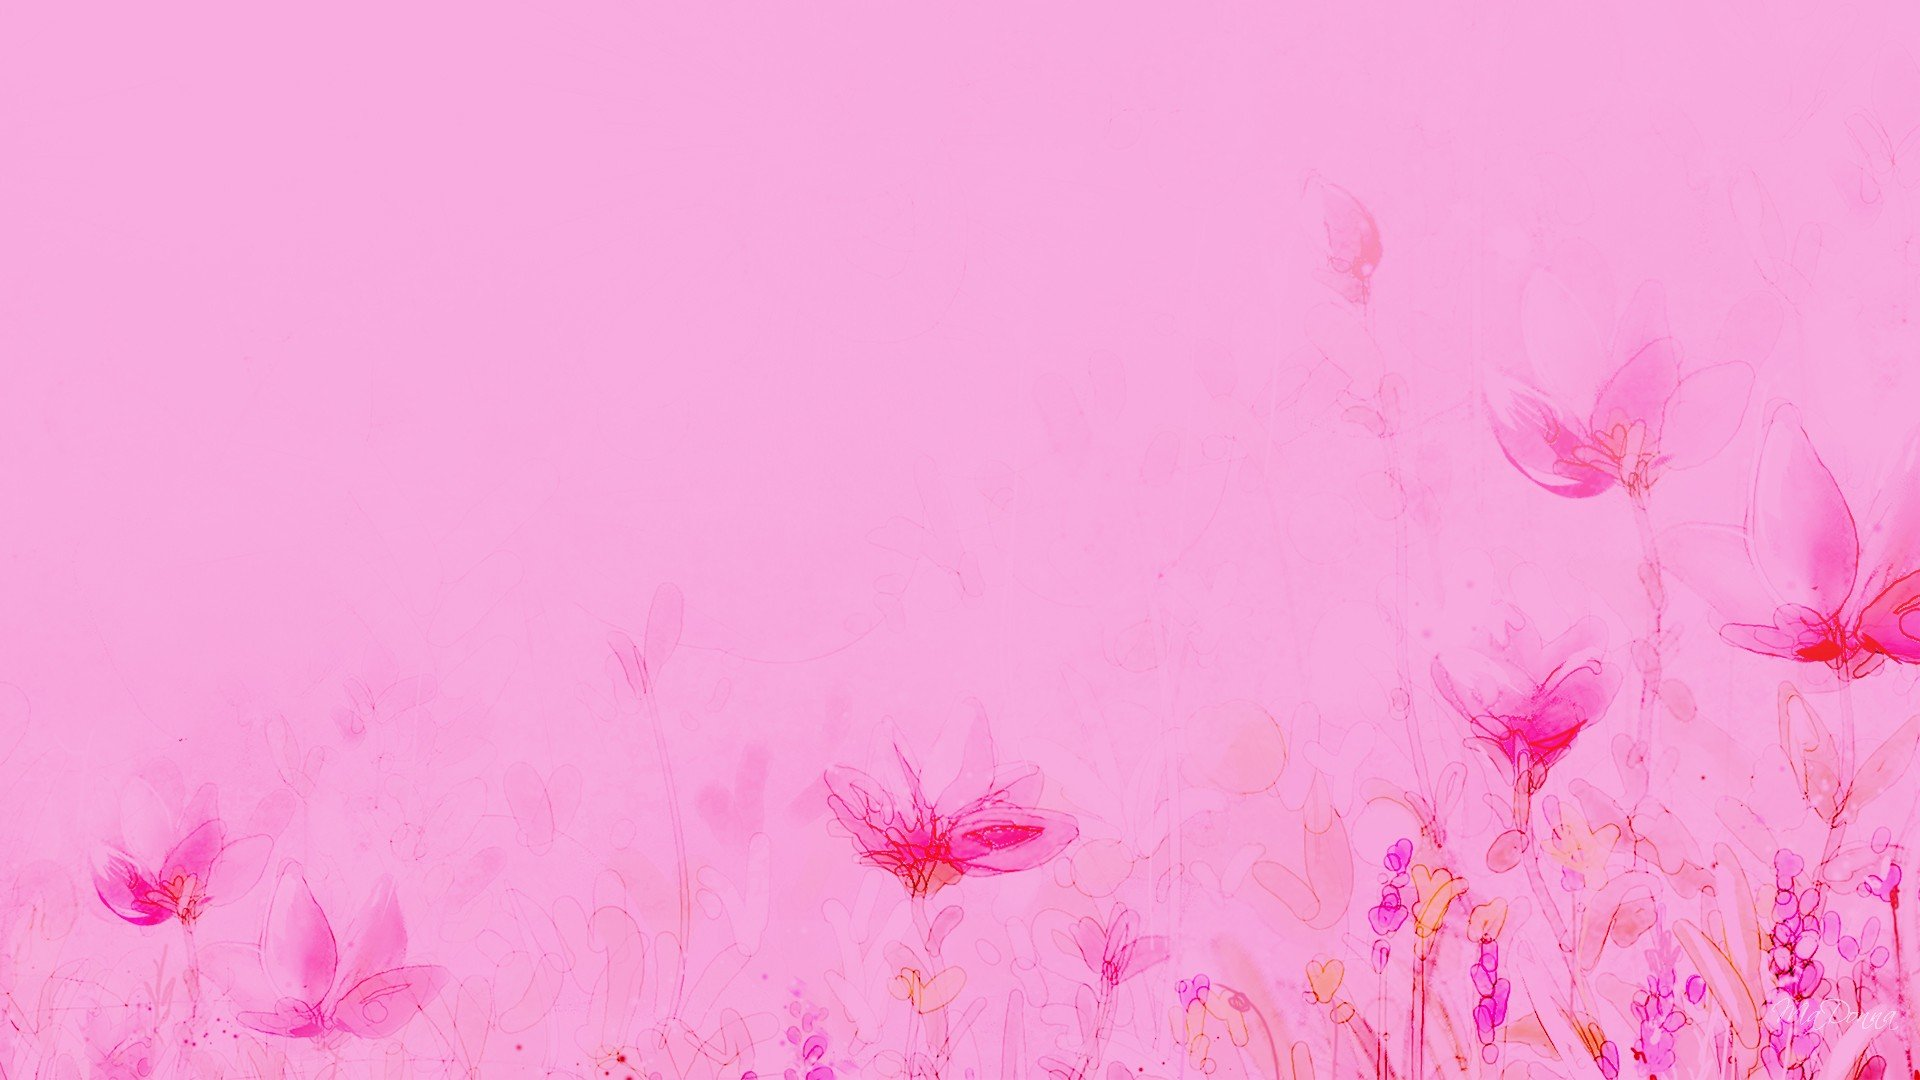 HD Light Pink Backgrounds 1920x1080